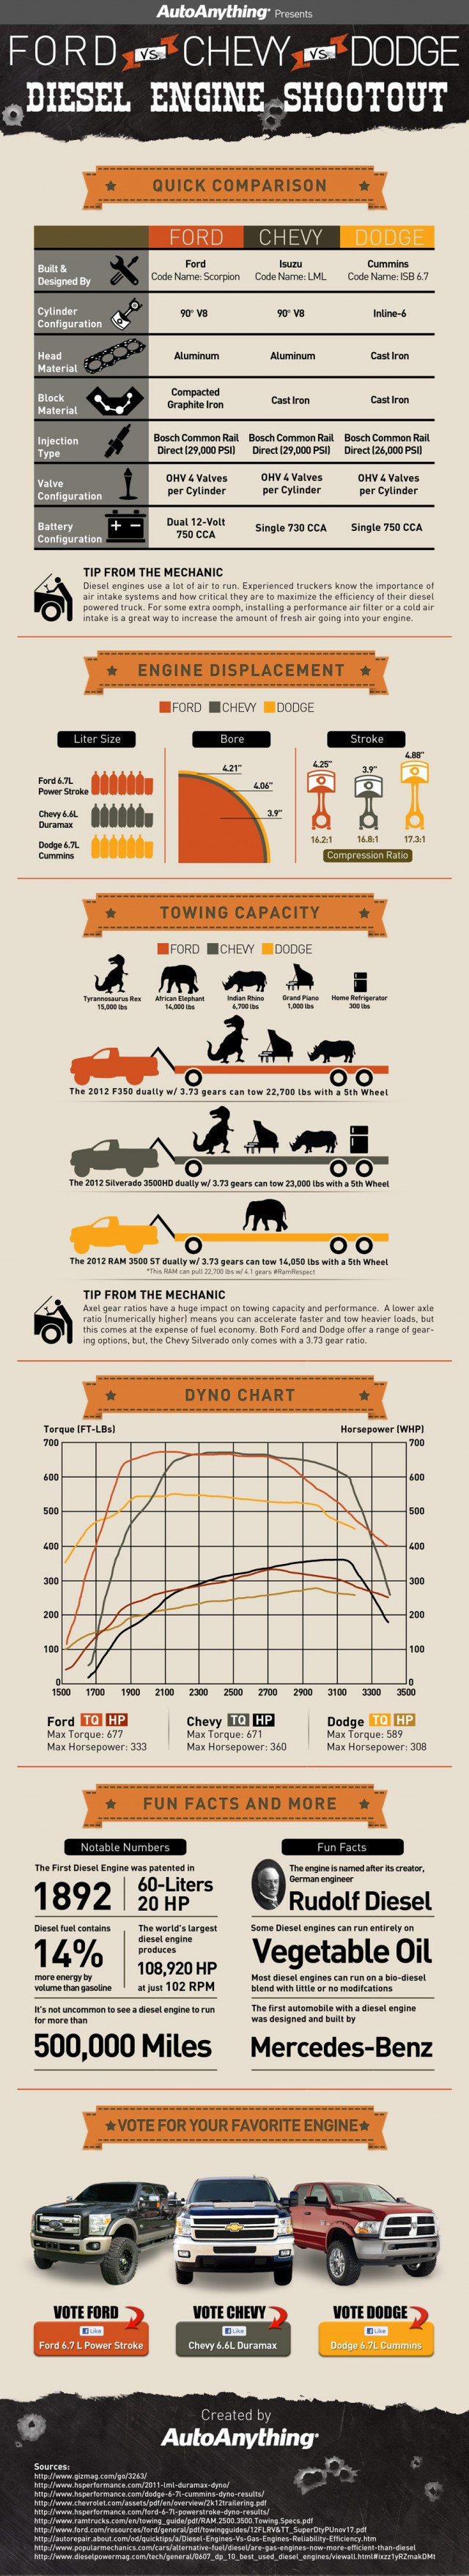 Battle of the Diesel Engines [infographic]